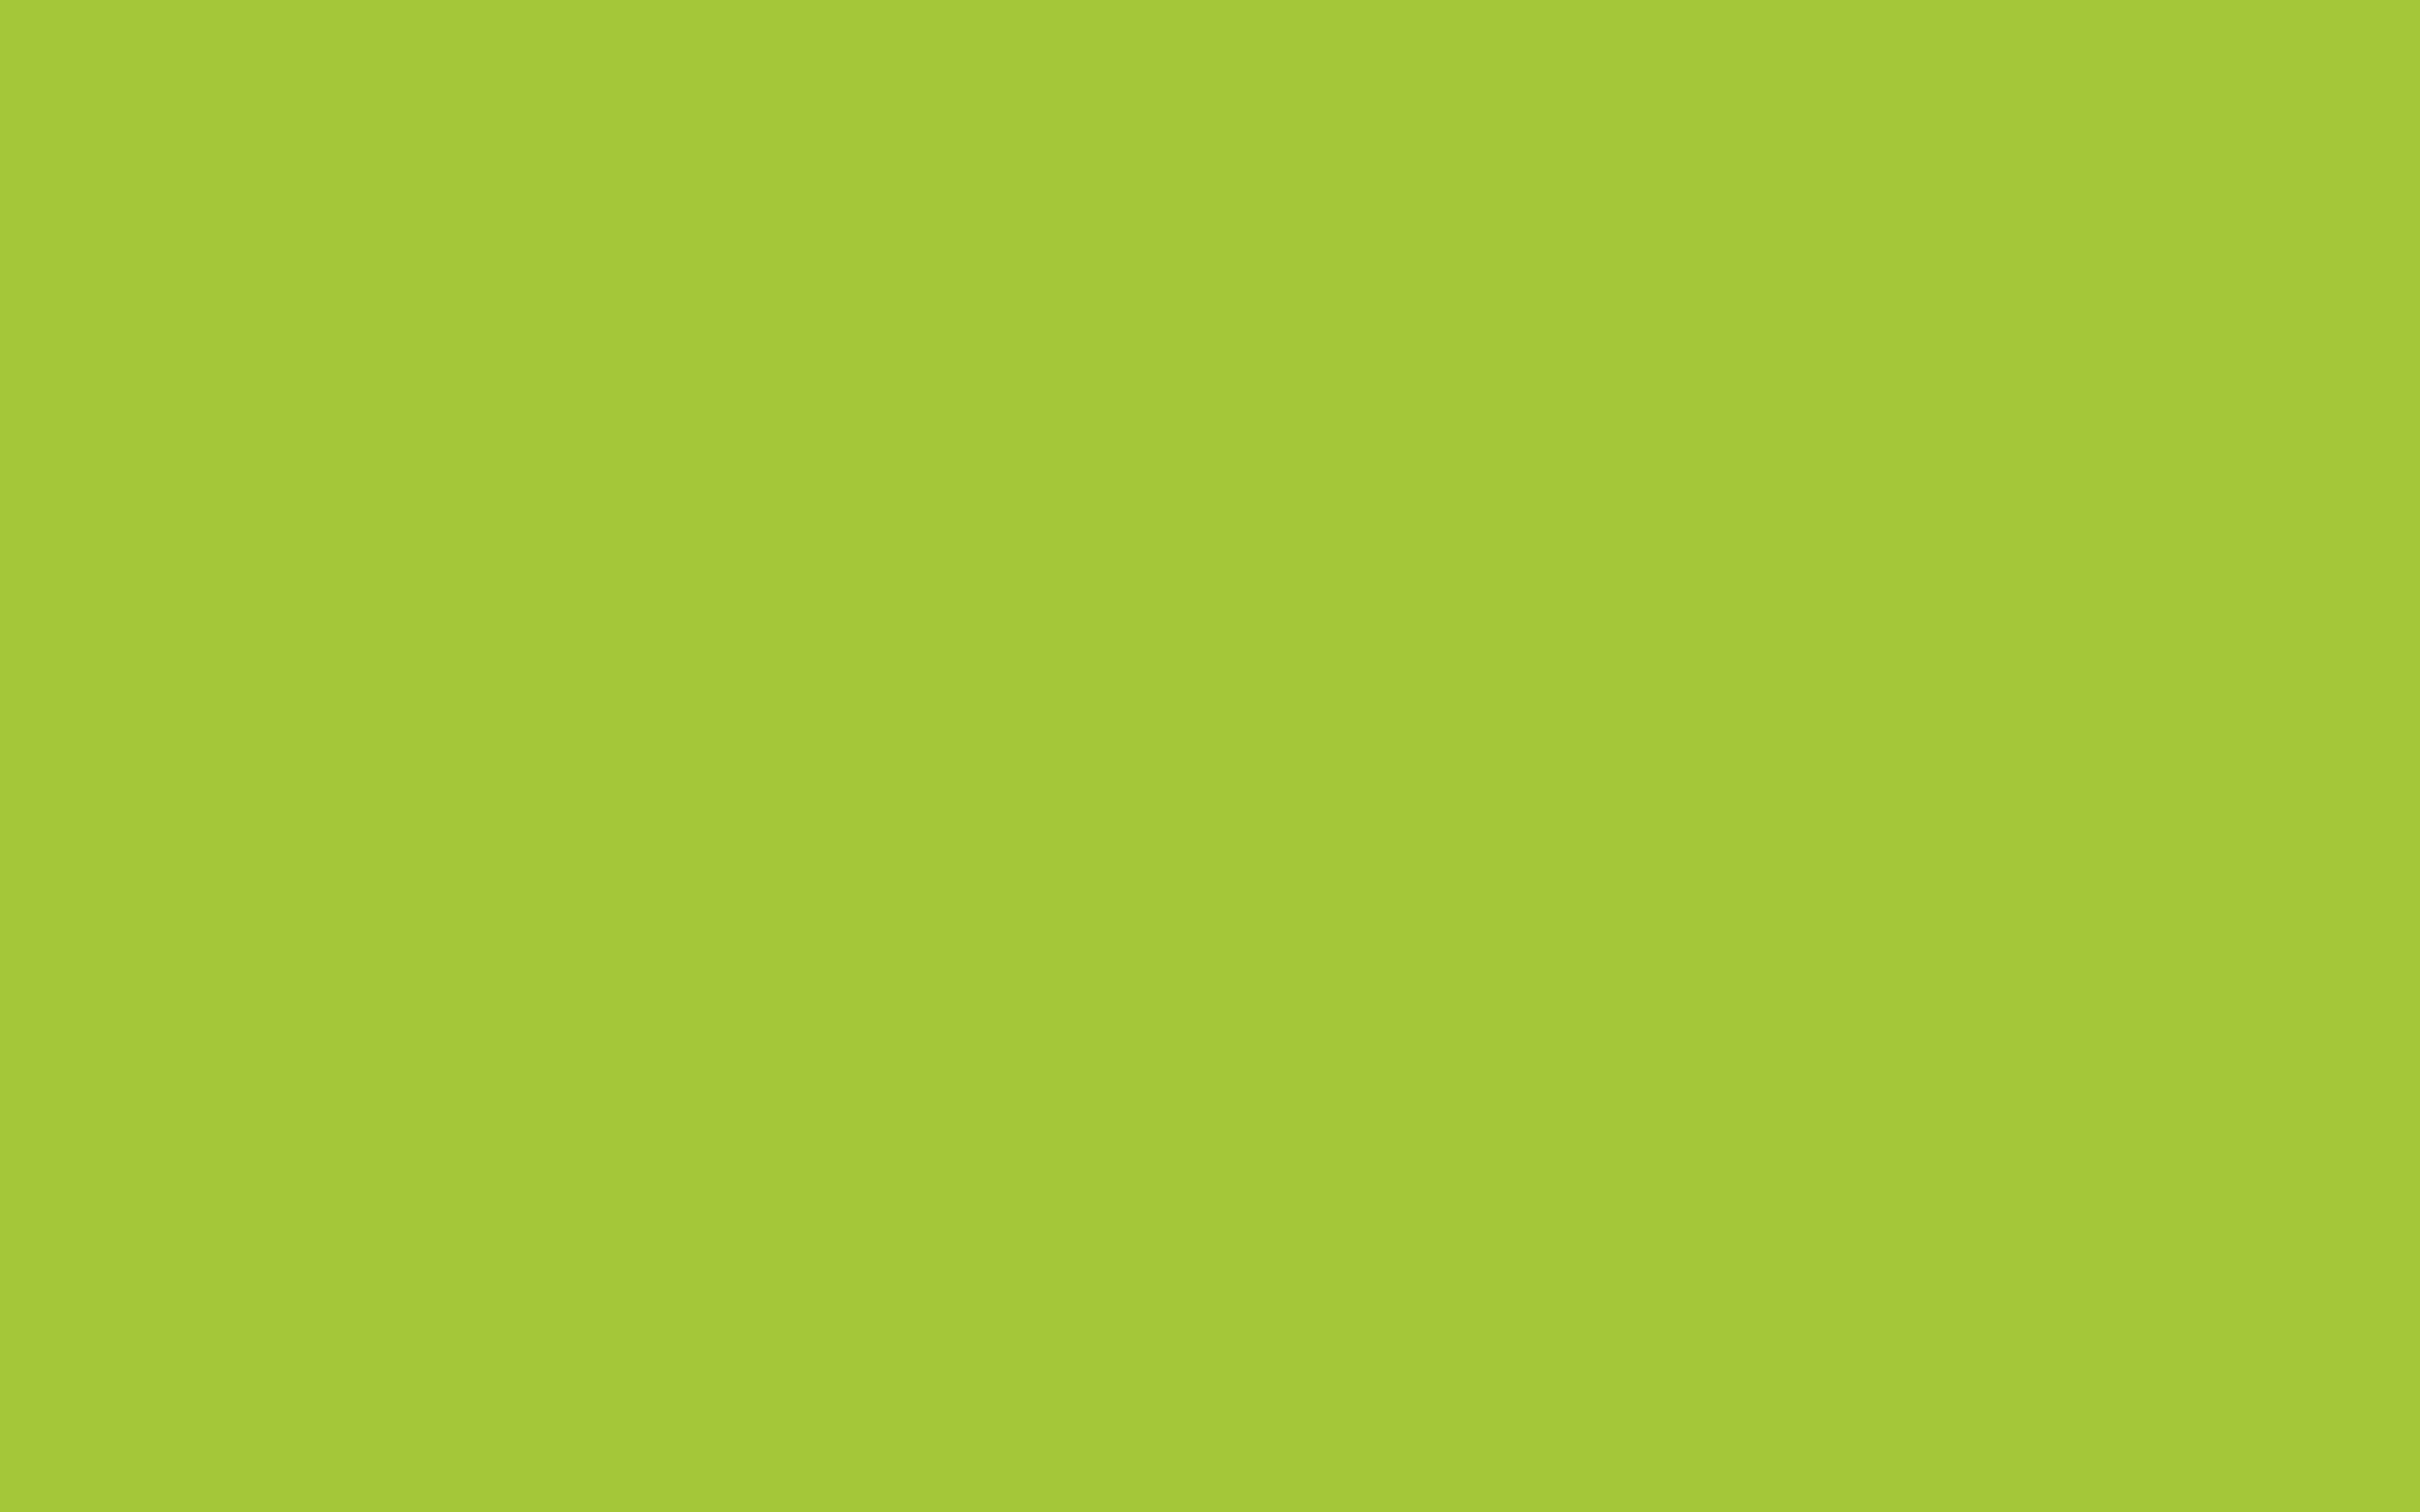 2560x1600 Android Green Solid Color Background